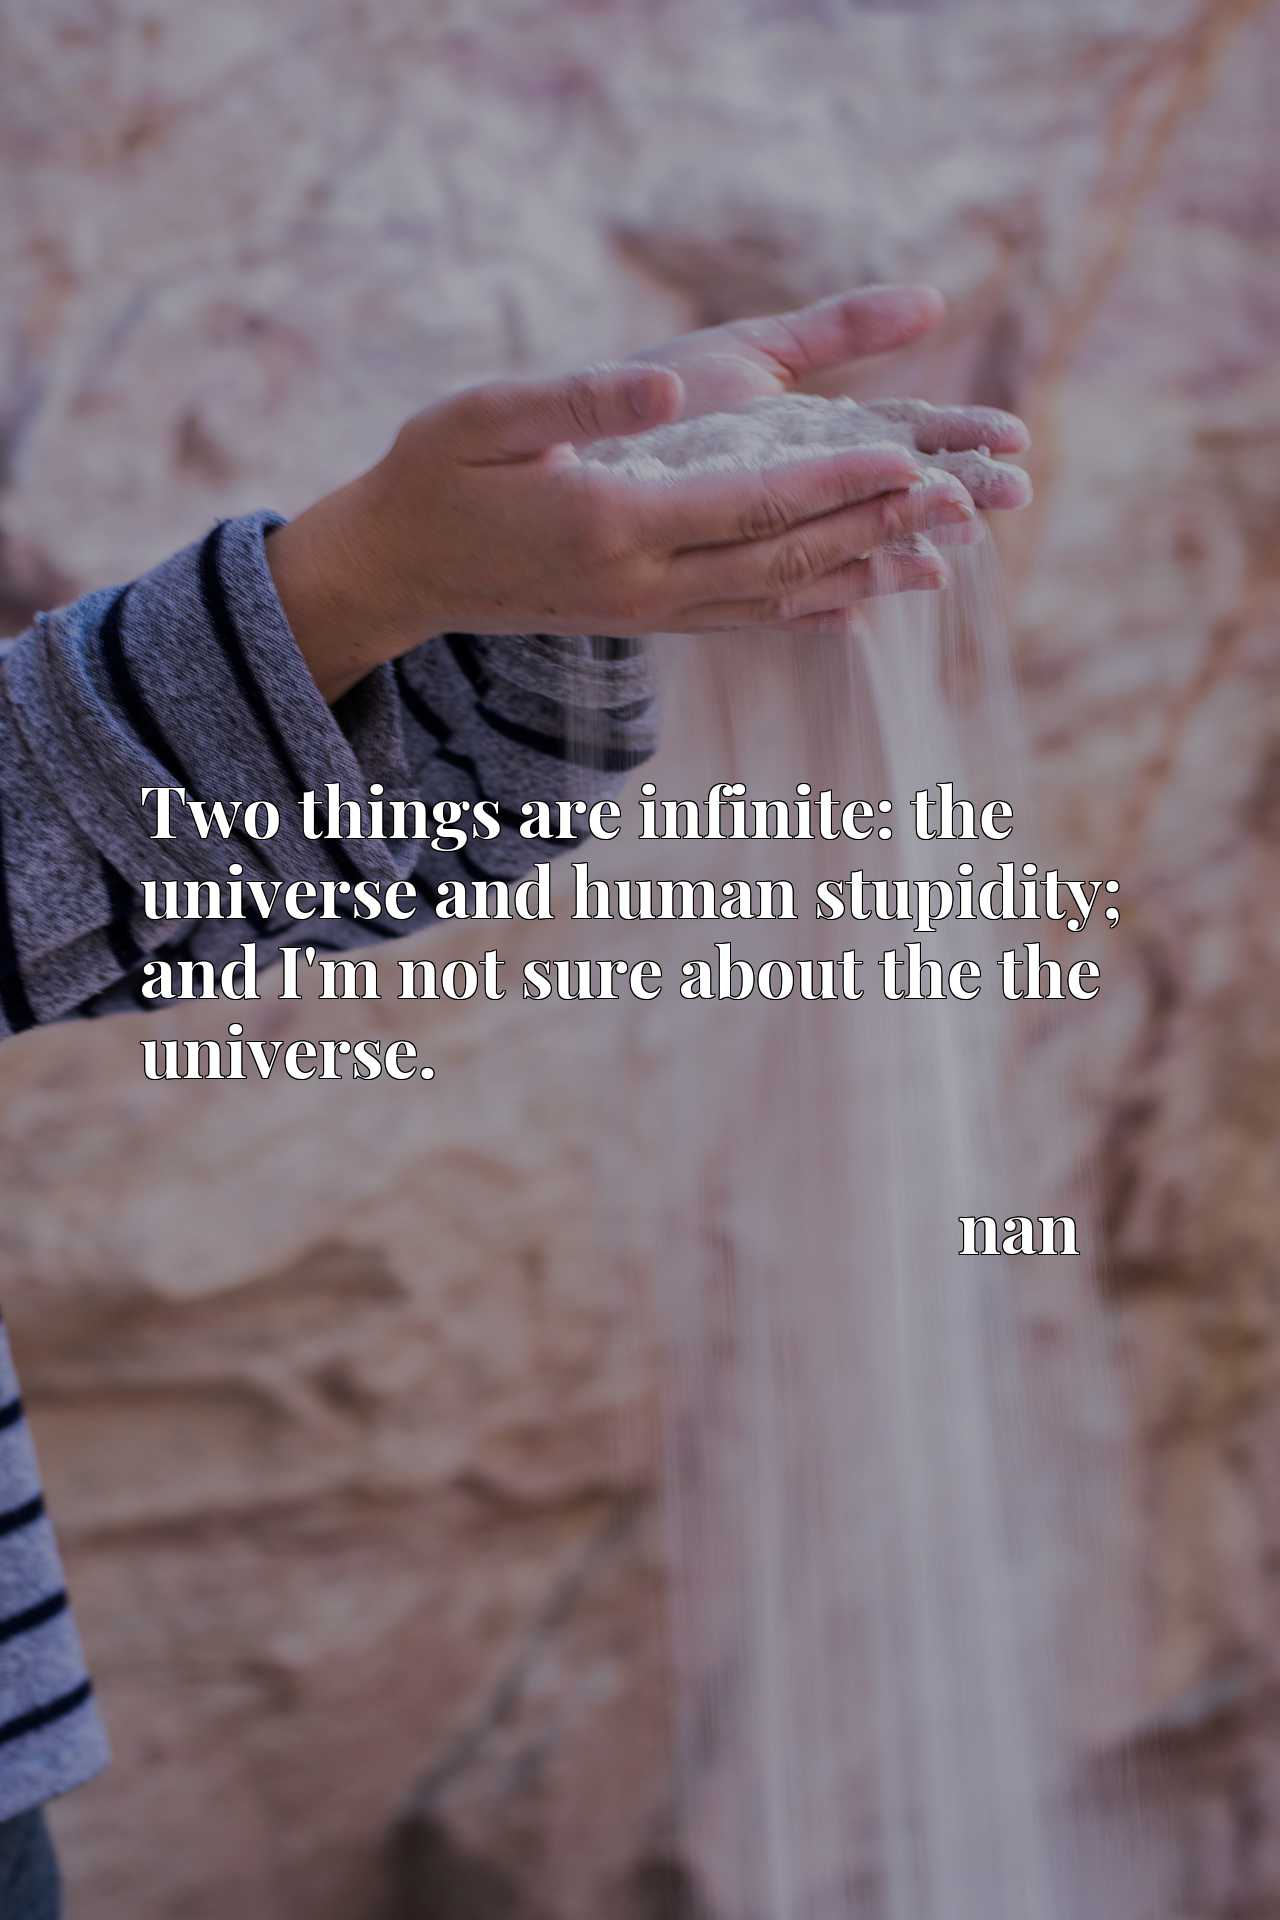 Two things are infinite: the universe and human stupidity; and I'm not sure about the the universe.